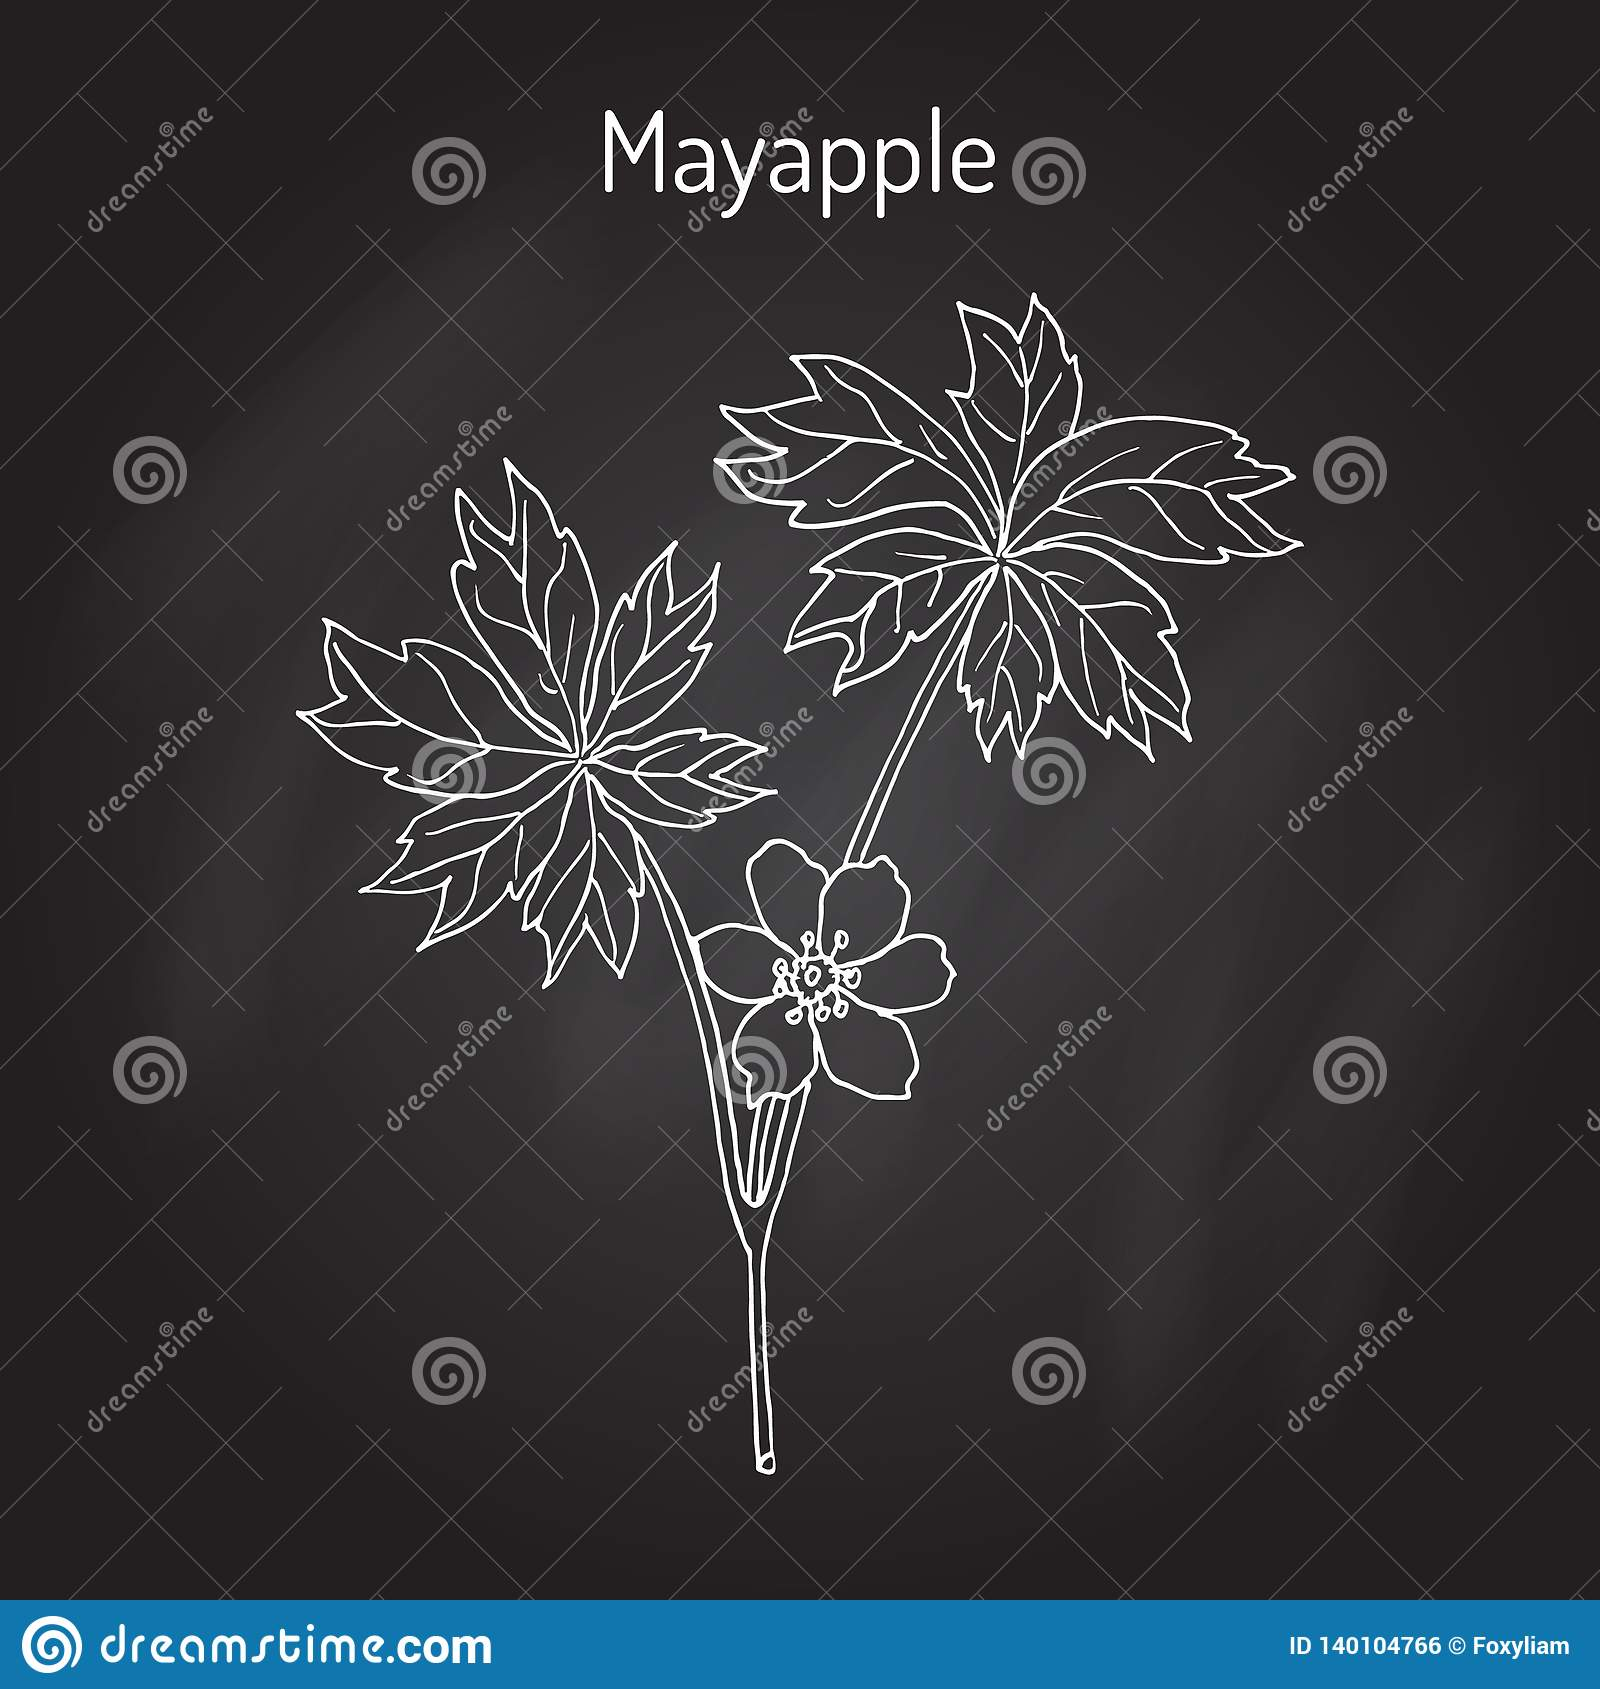 Mayapple Ilex purpurea , or wild mandrake, ground lemon, medicinal plant